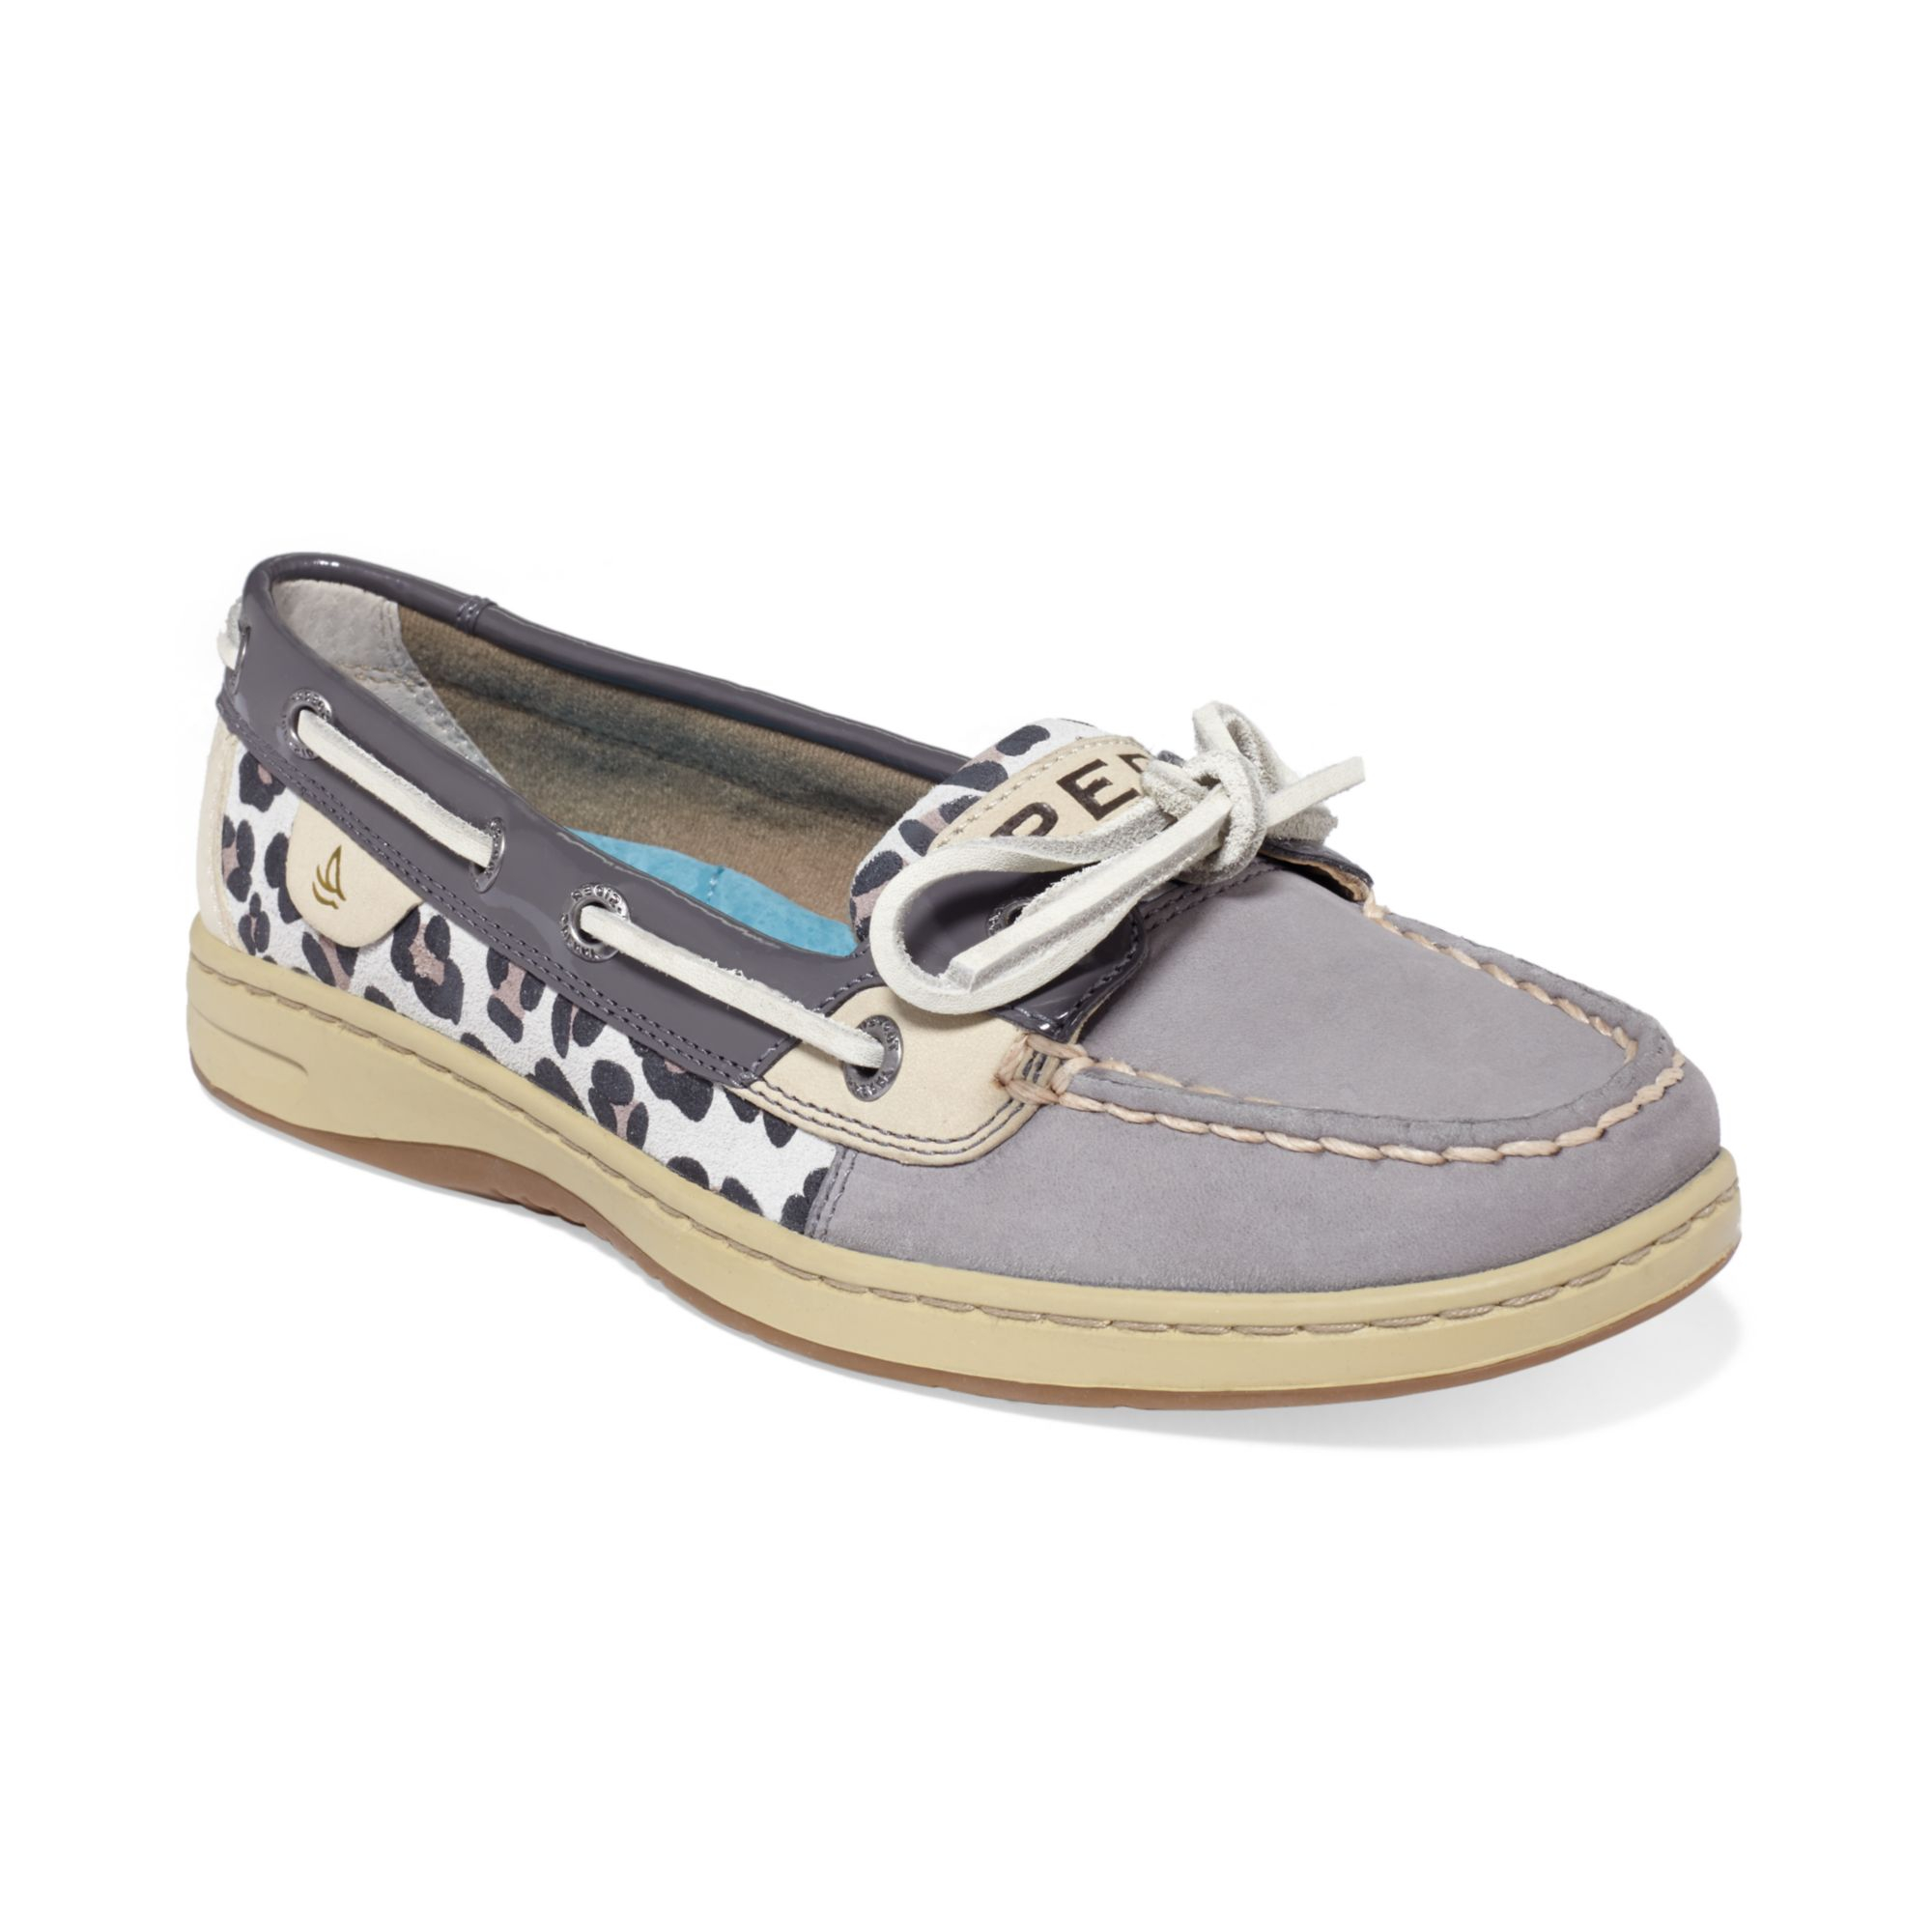 sperry top sider womens angelfish boat shoes in gray lyst